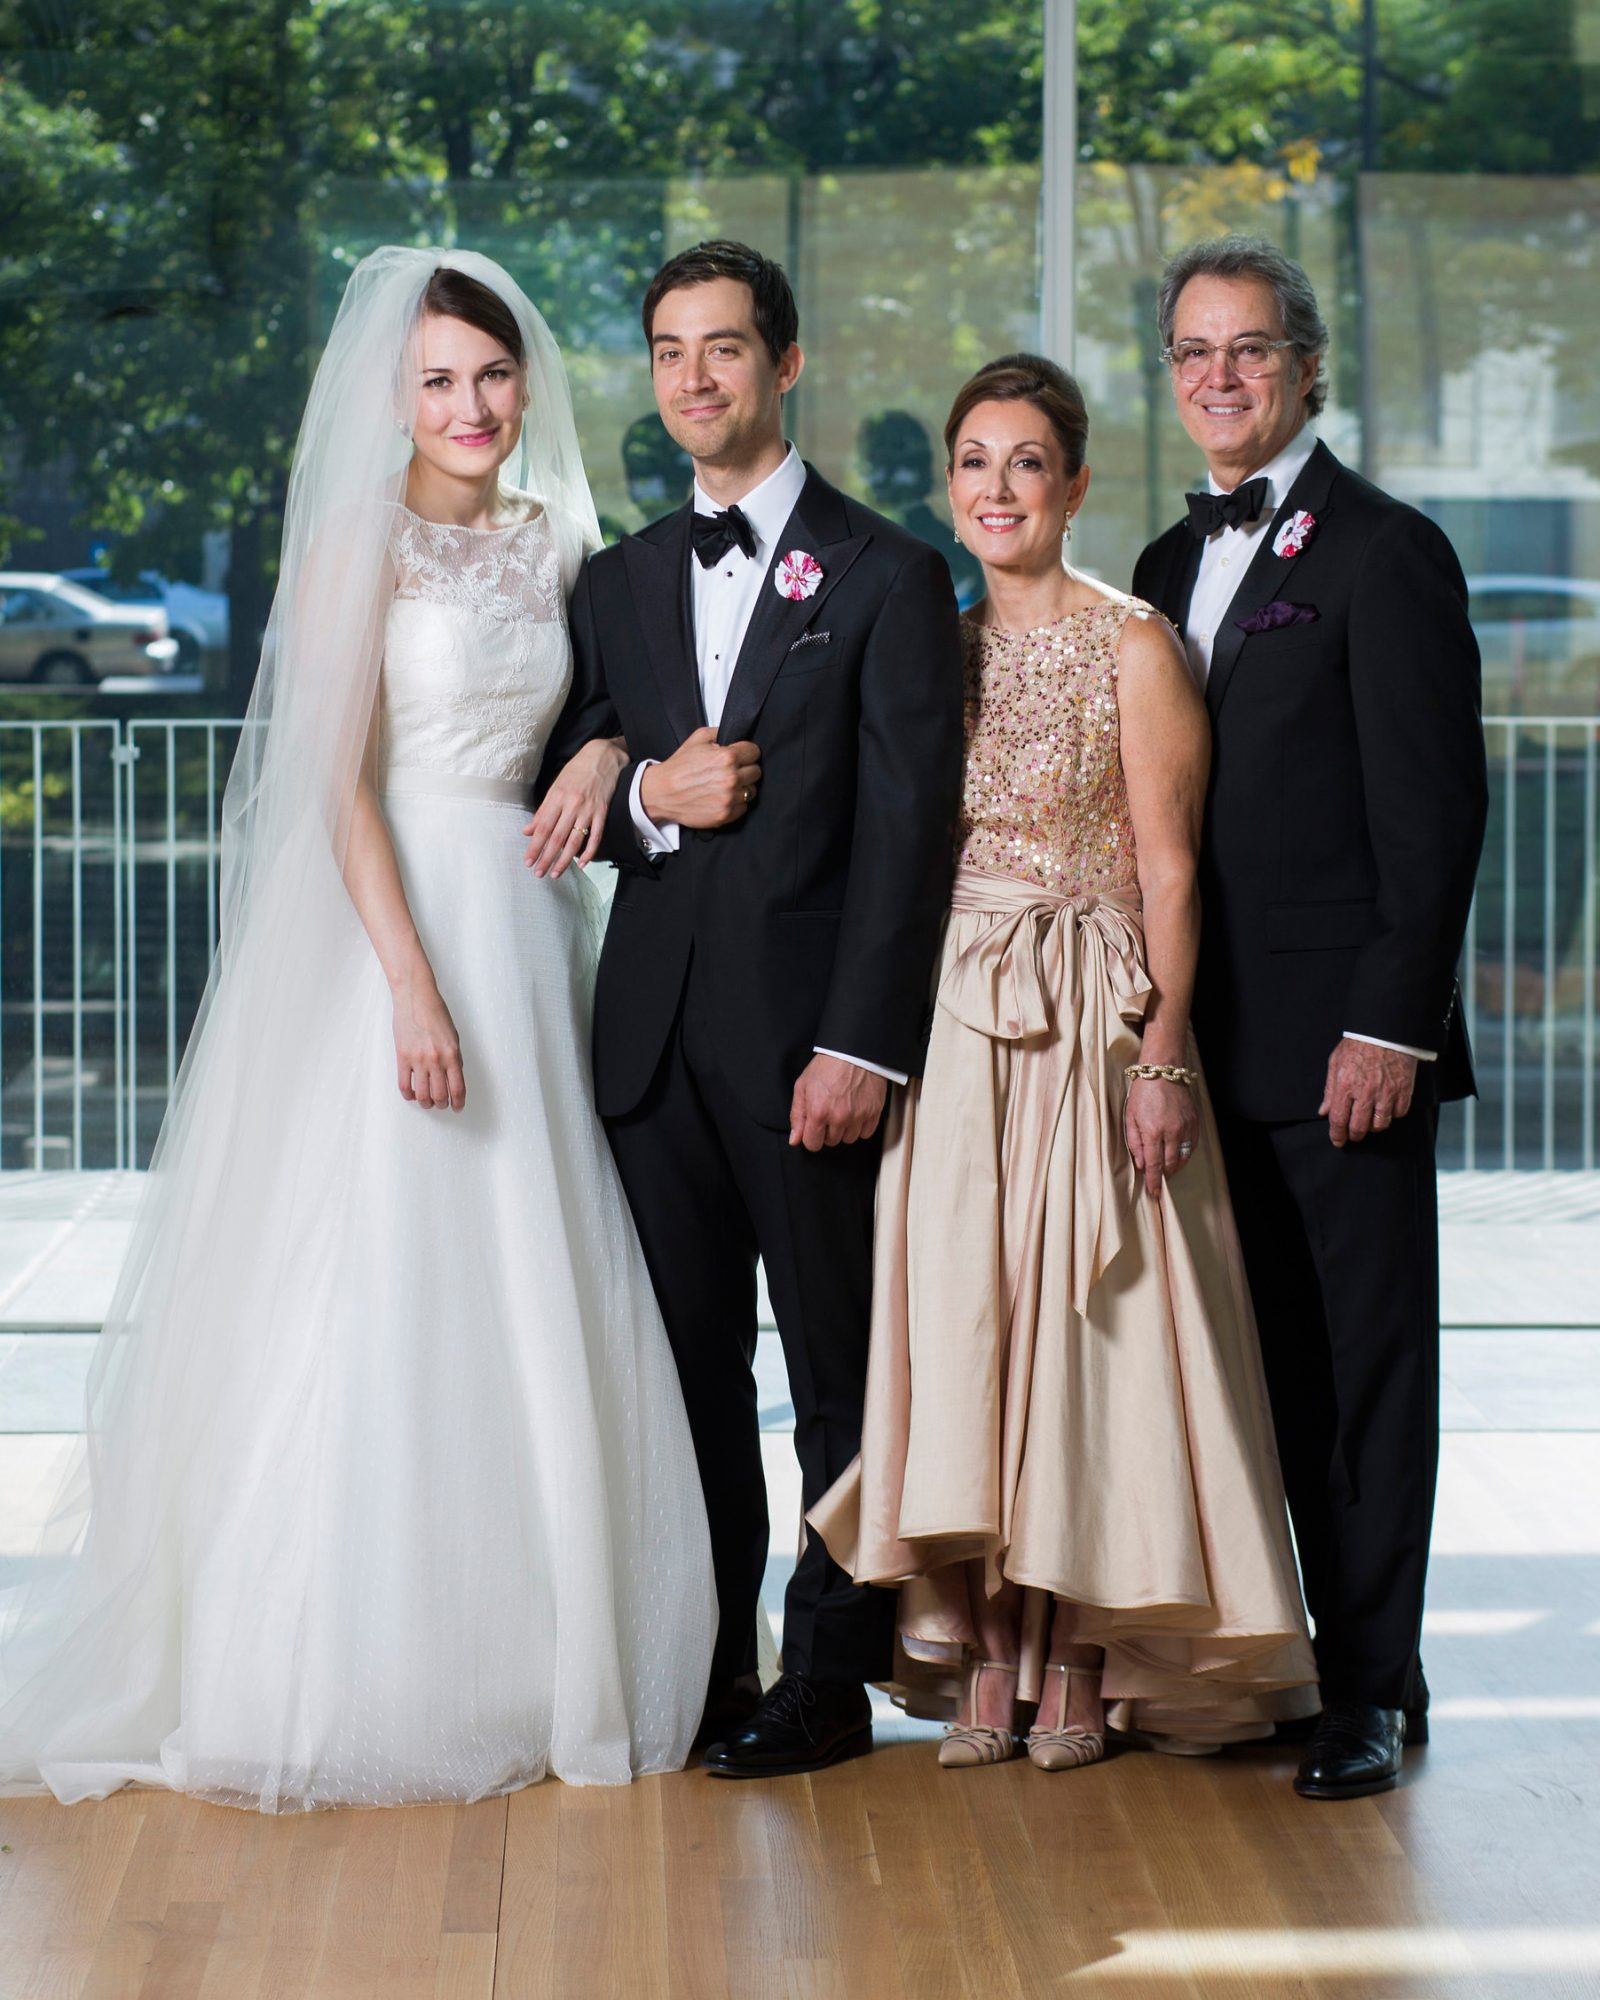 ashley-ryan-wedding-family-6224-s111852-0415.jpg